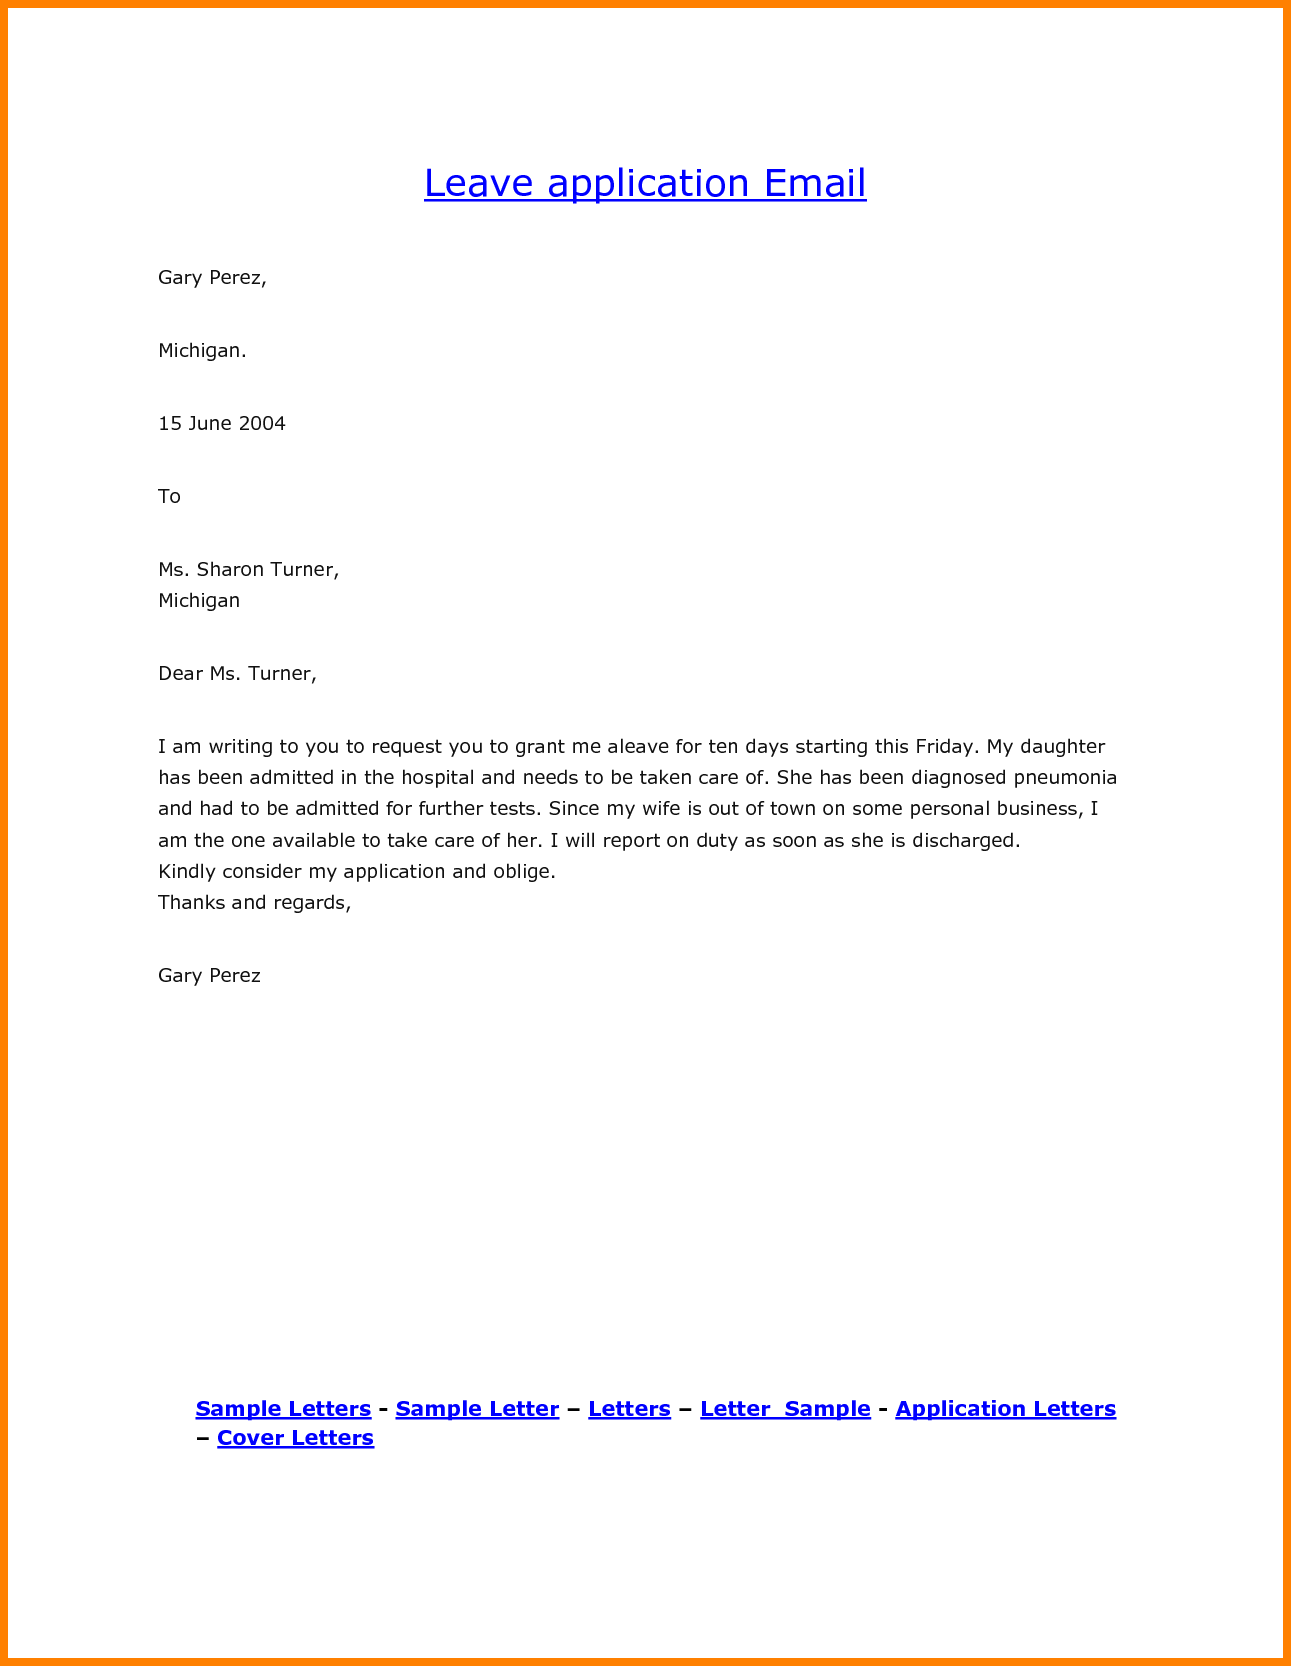 Leave Request Email / Letter